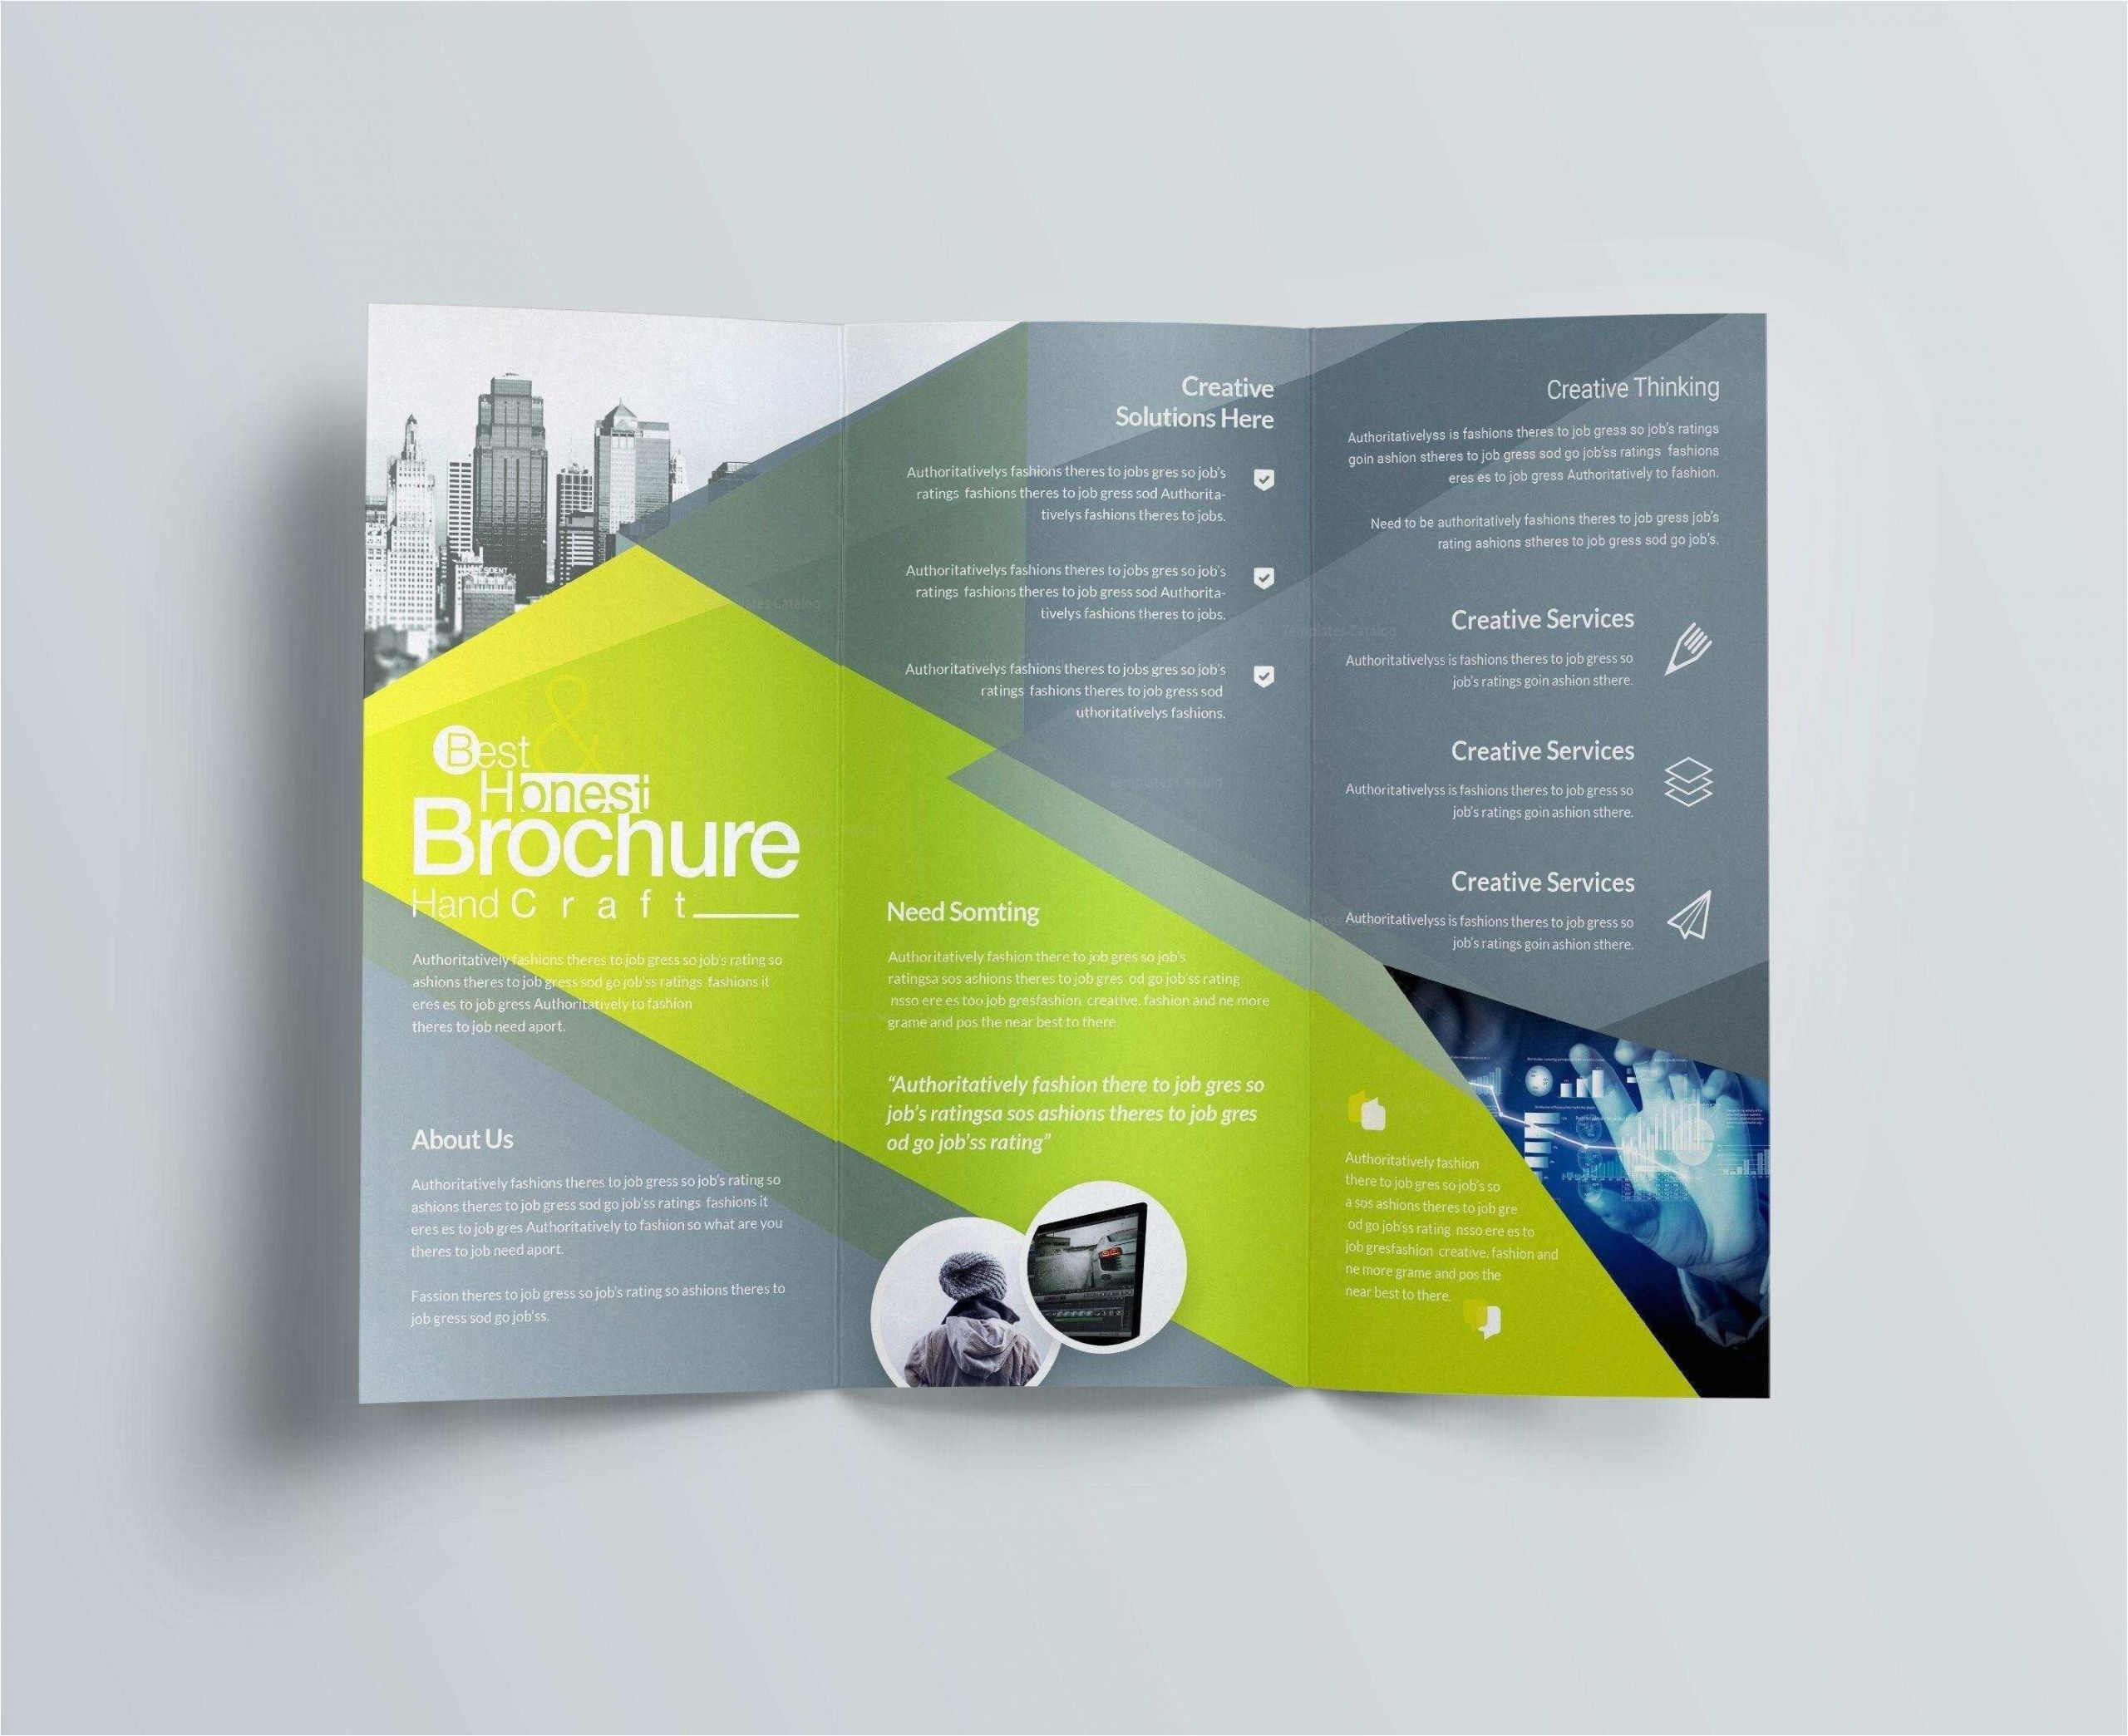 67 blank free publisher flyer templates psd file by free publisher flyer templates jpg